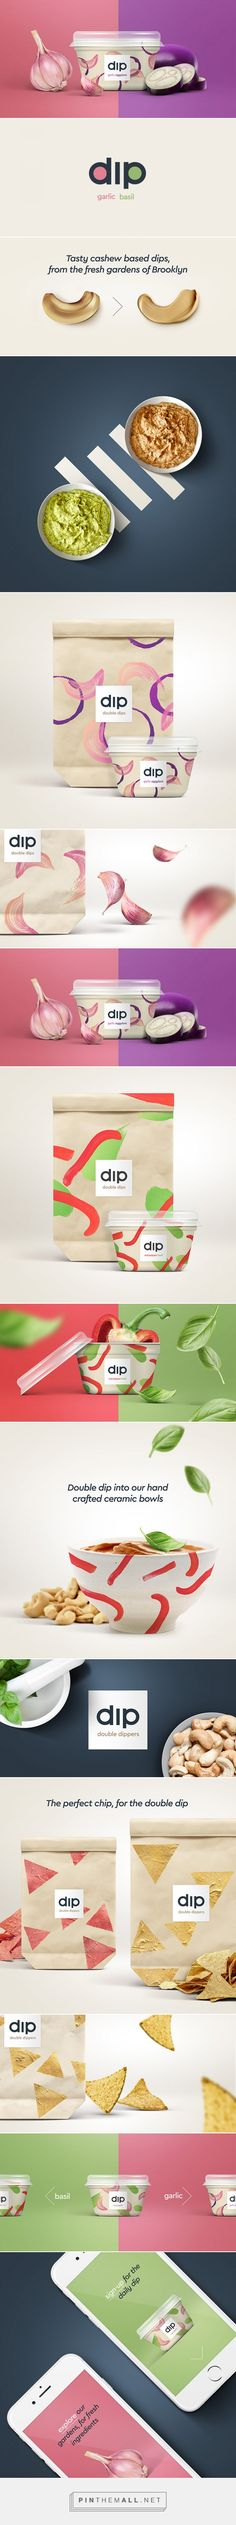 Double Dips - Daily Package Design InspirationDaily Package Design Inspiration   - created via https://pinthemall.net